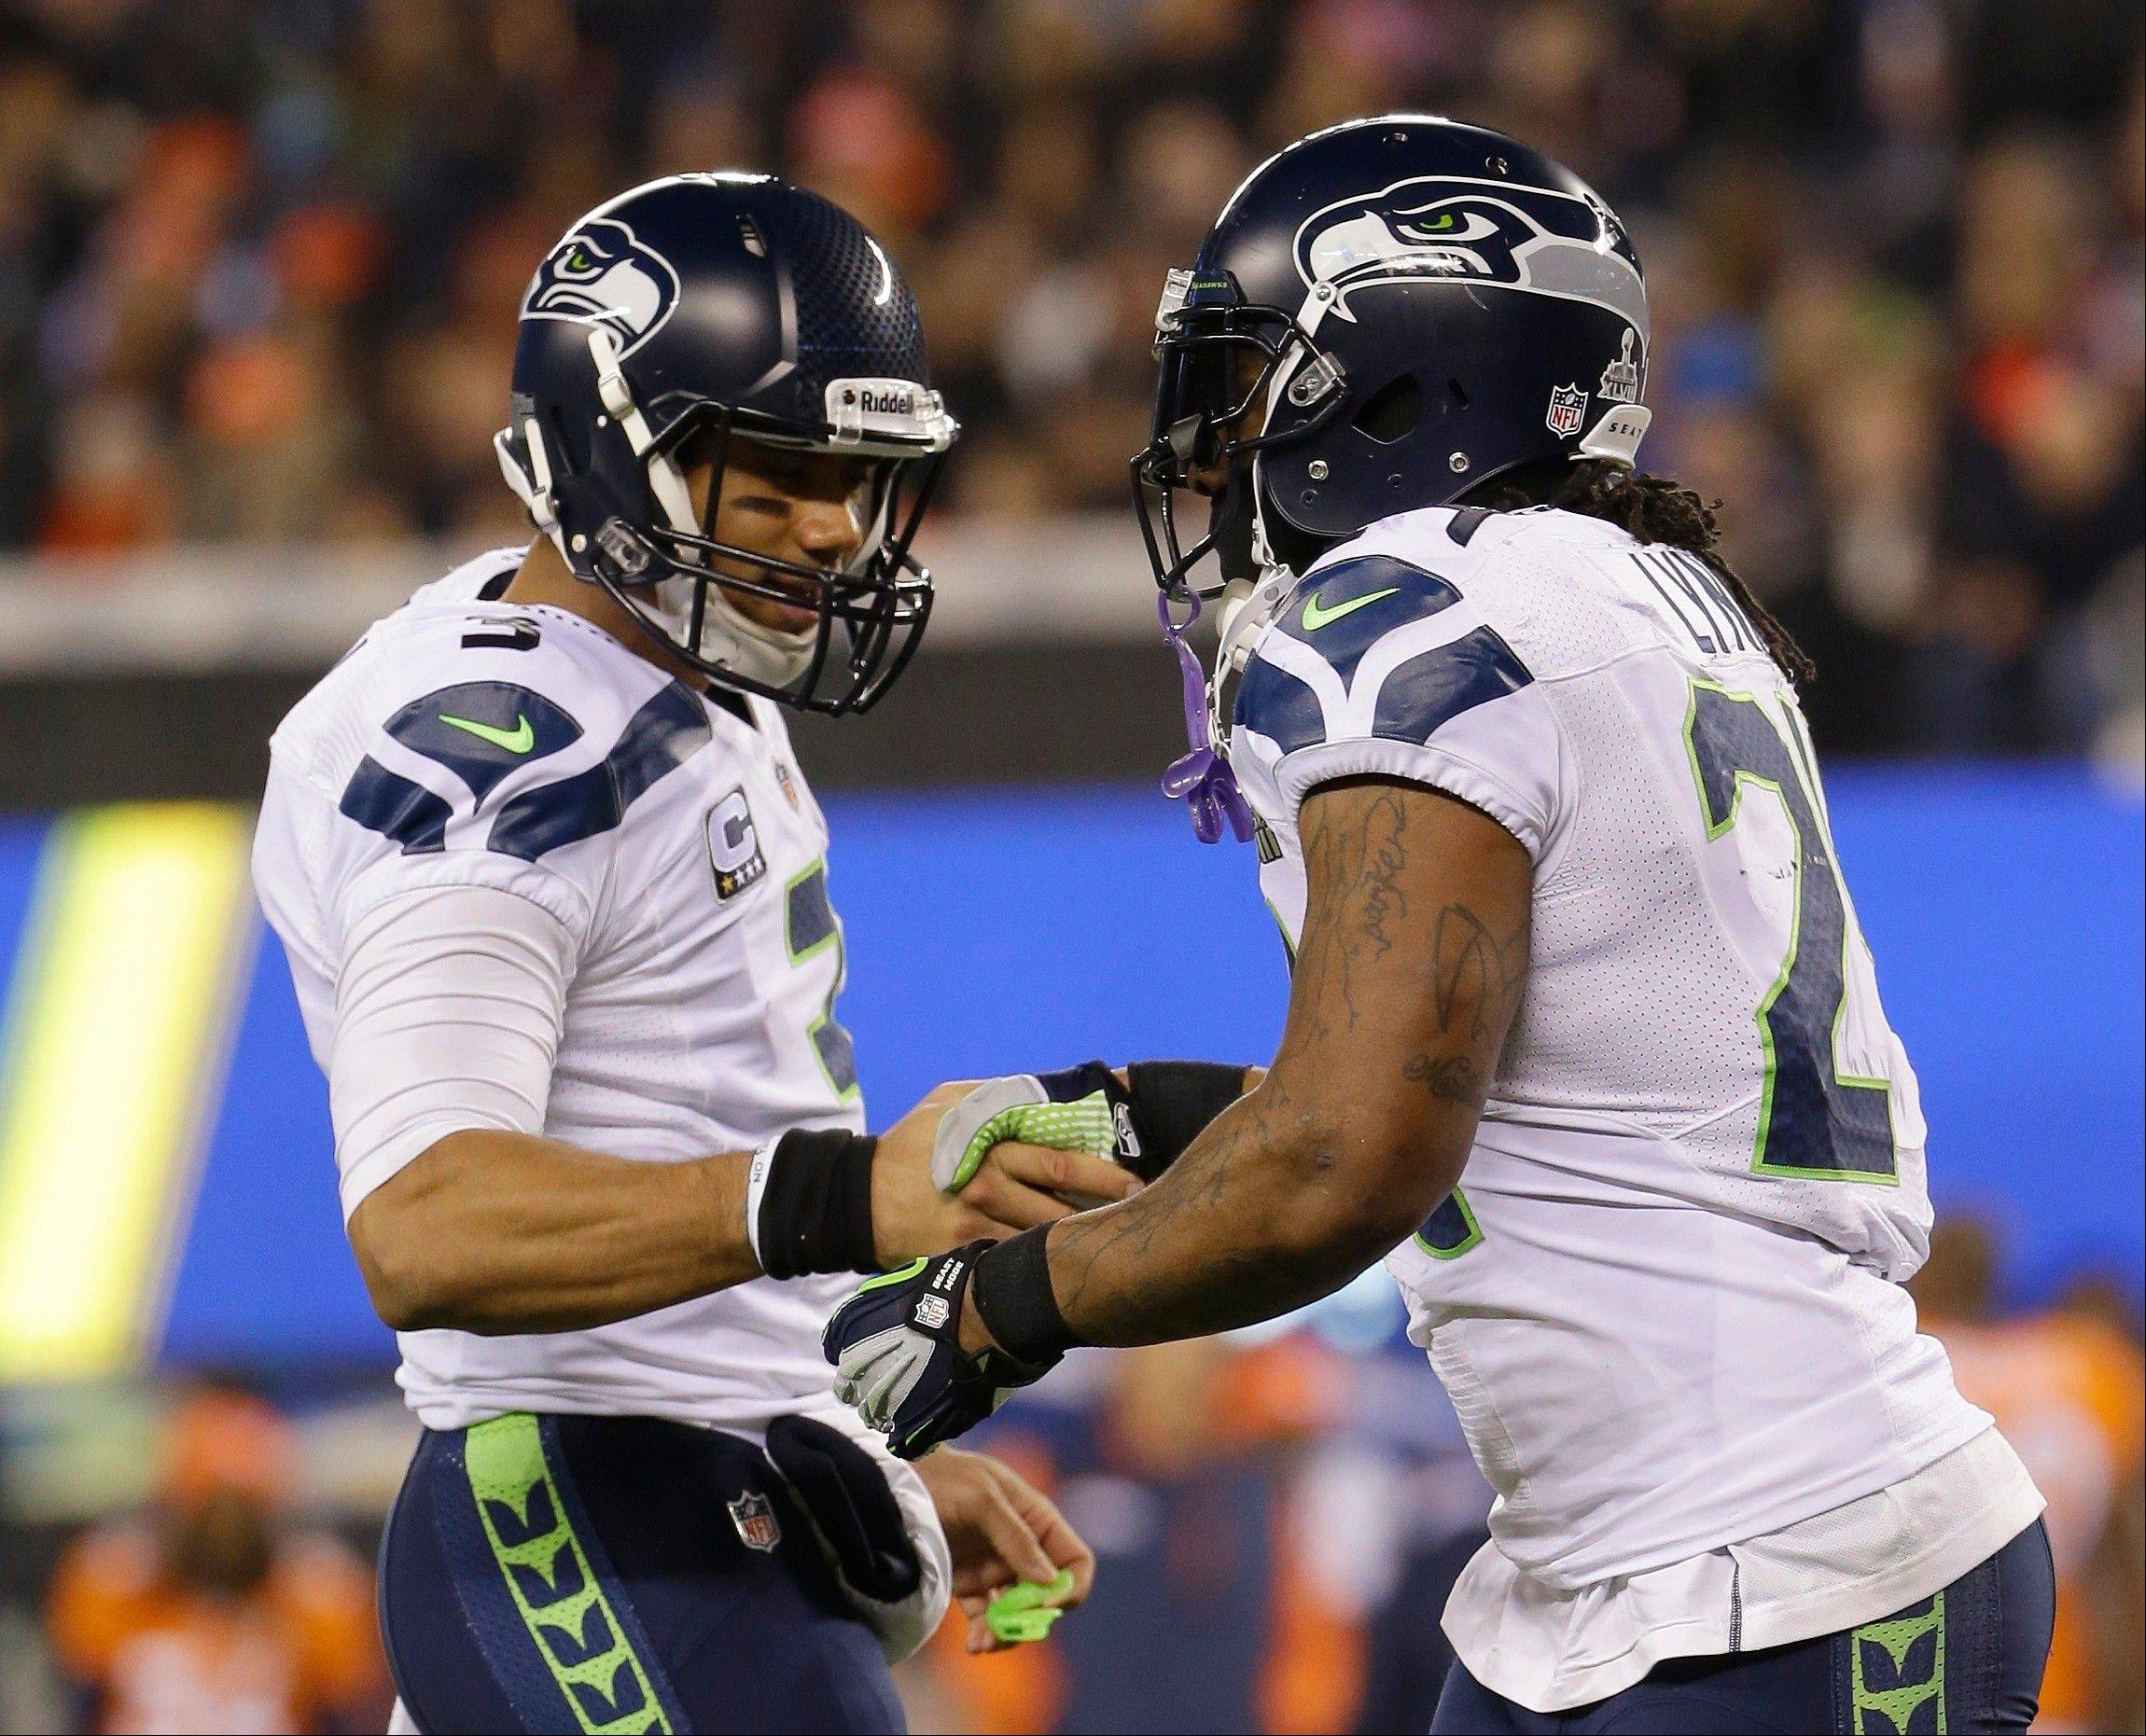 Seattle Seahawks' Russell Wilson, left, celebrates with teammate Marshawn Lynch during the first half of the NFL Super Bowl XLVIII football game against the Denver Broncos.